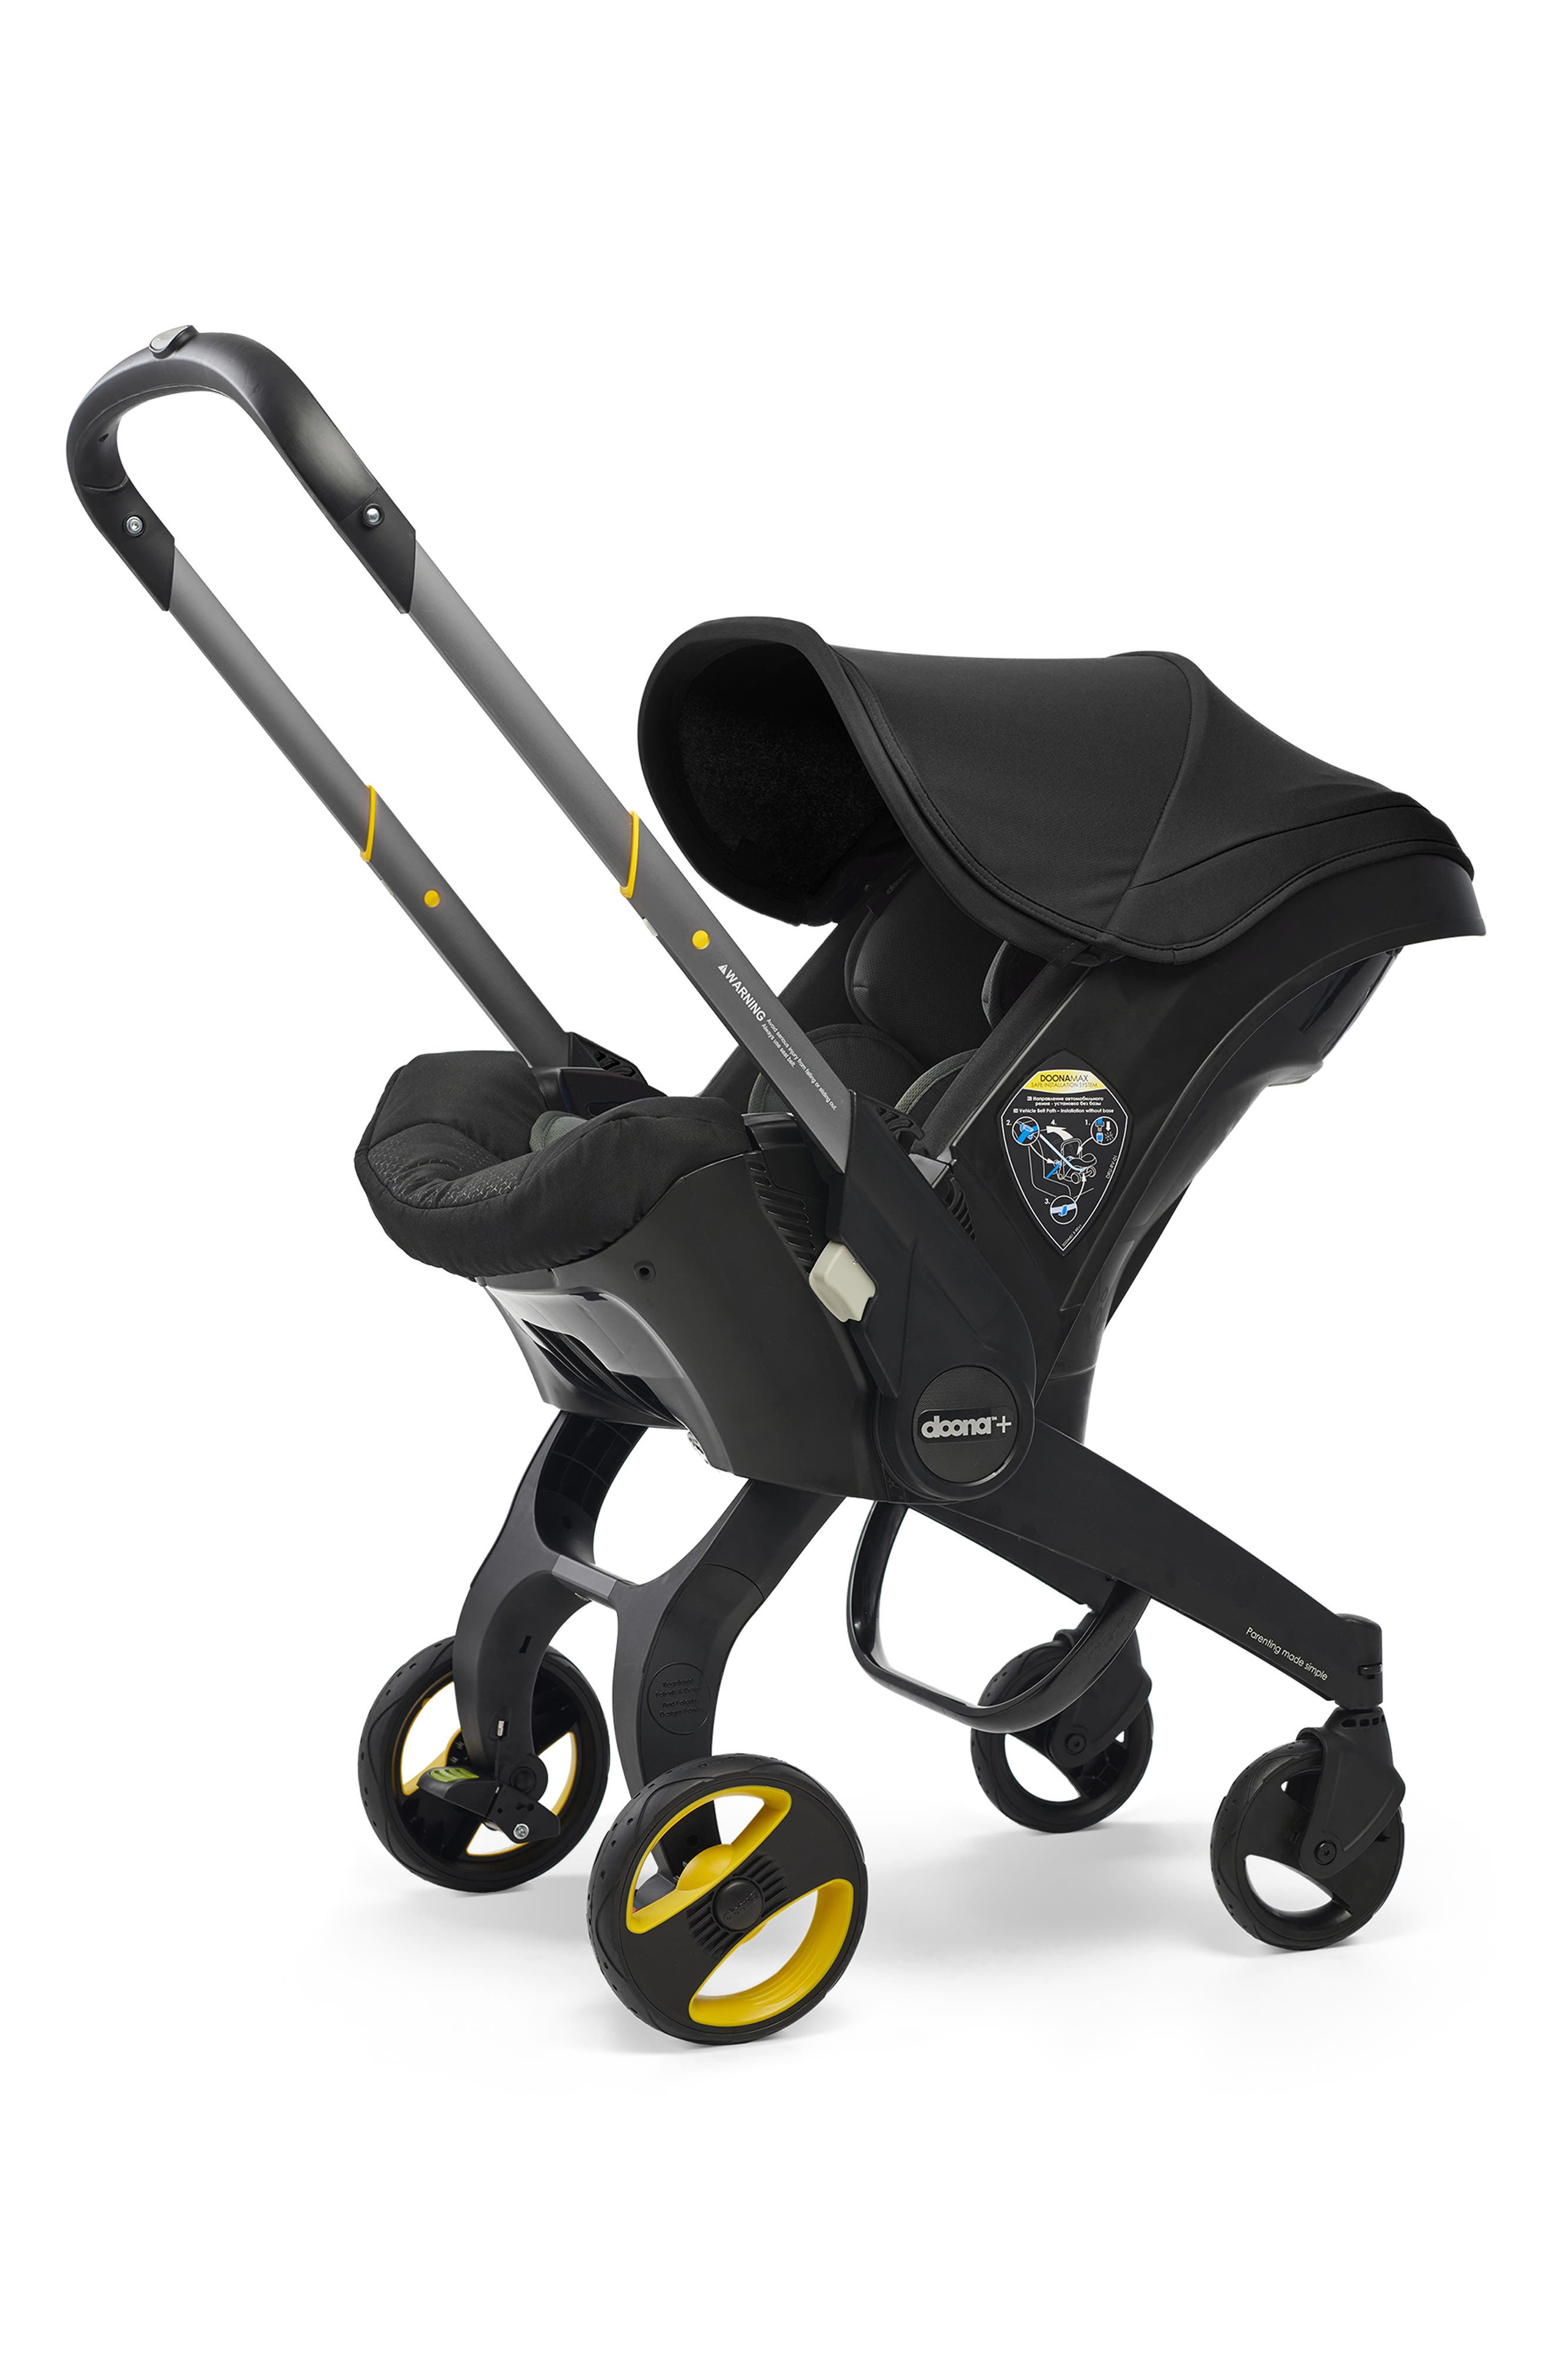 Convertible Infant Car Seat/Compact Stroller System with Base,                             Main thumbnail 1, color,                             BLACK/NIGHT